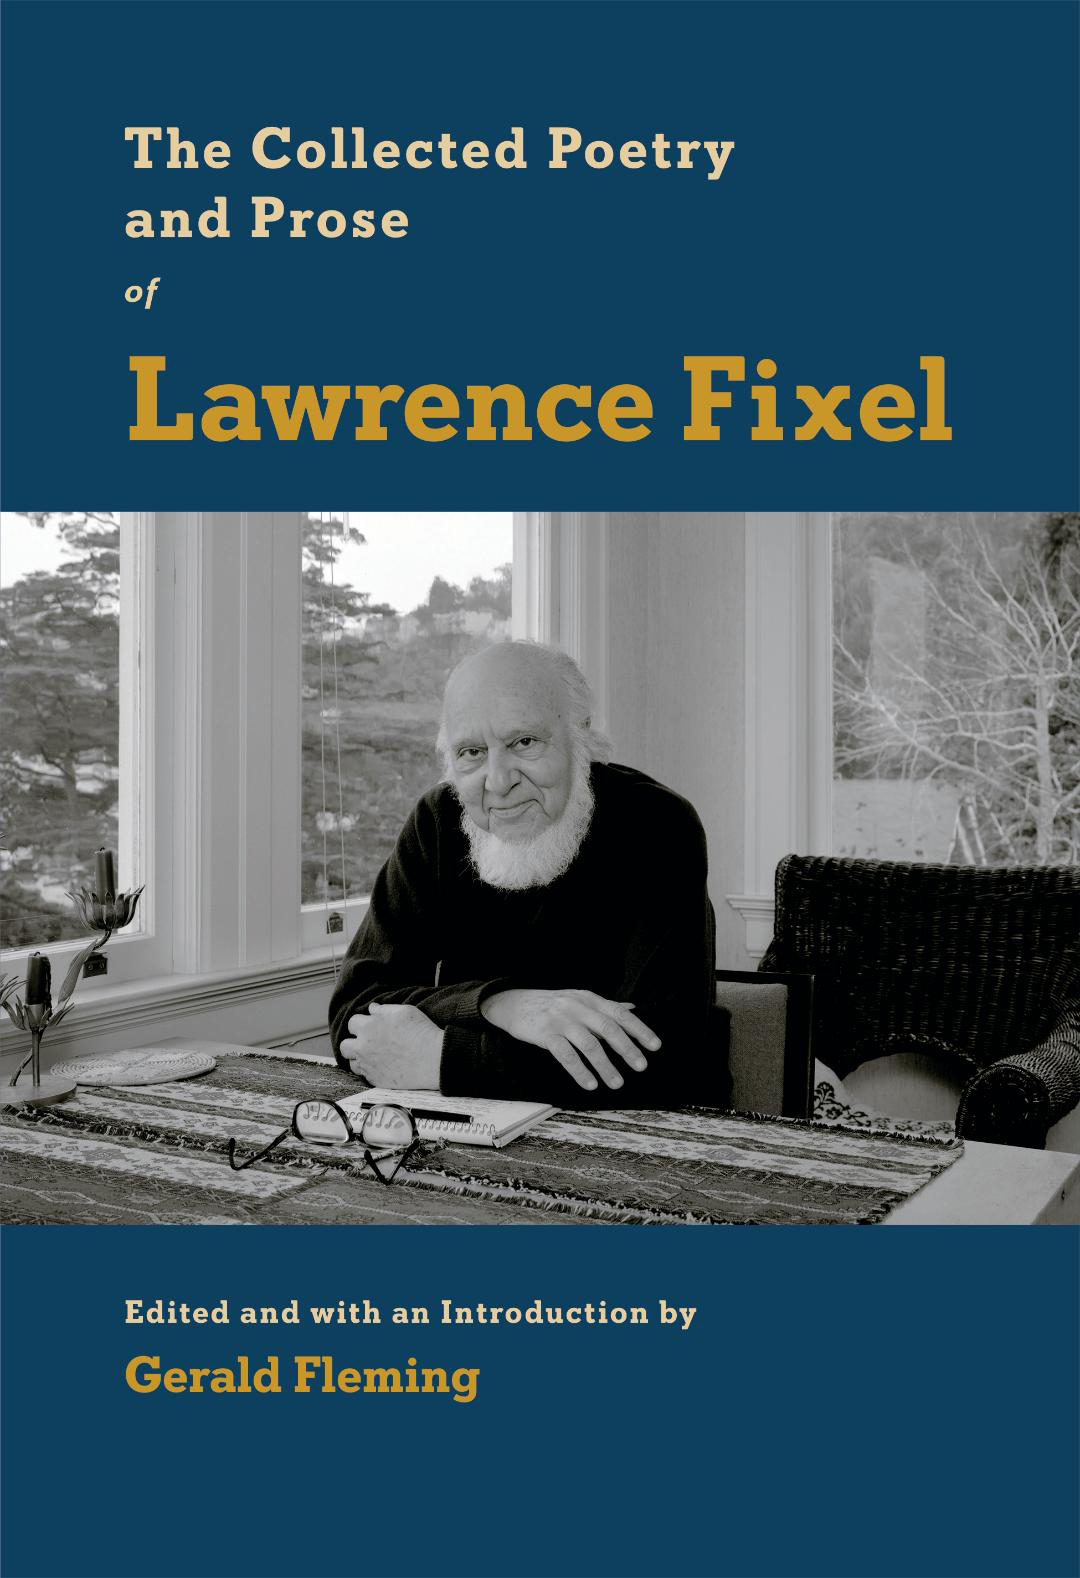 The Collected Poetry and Prose of Lawrence Fixel